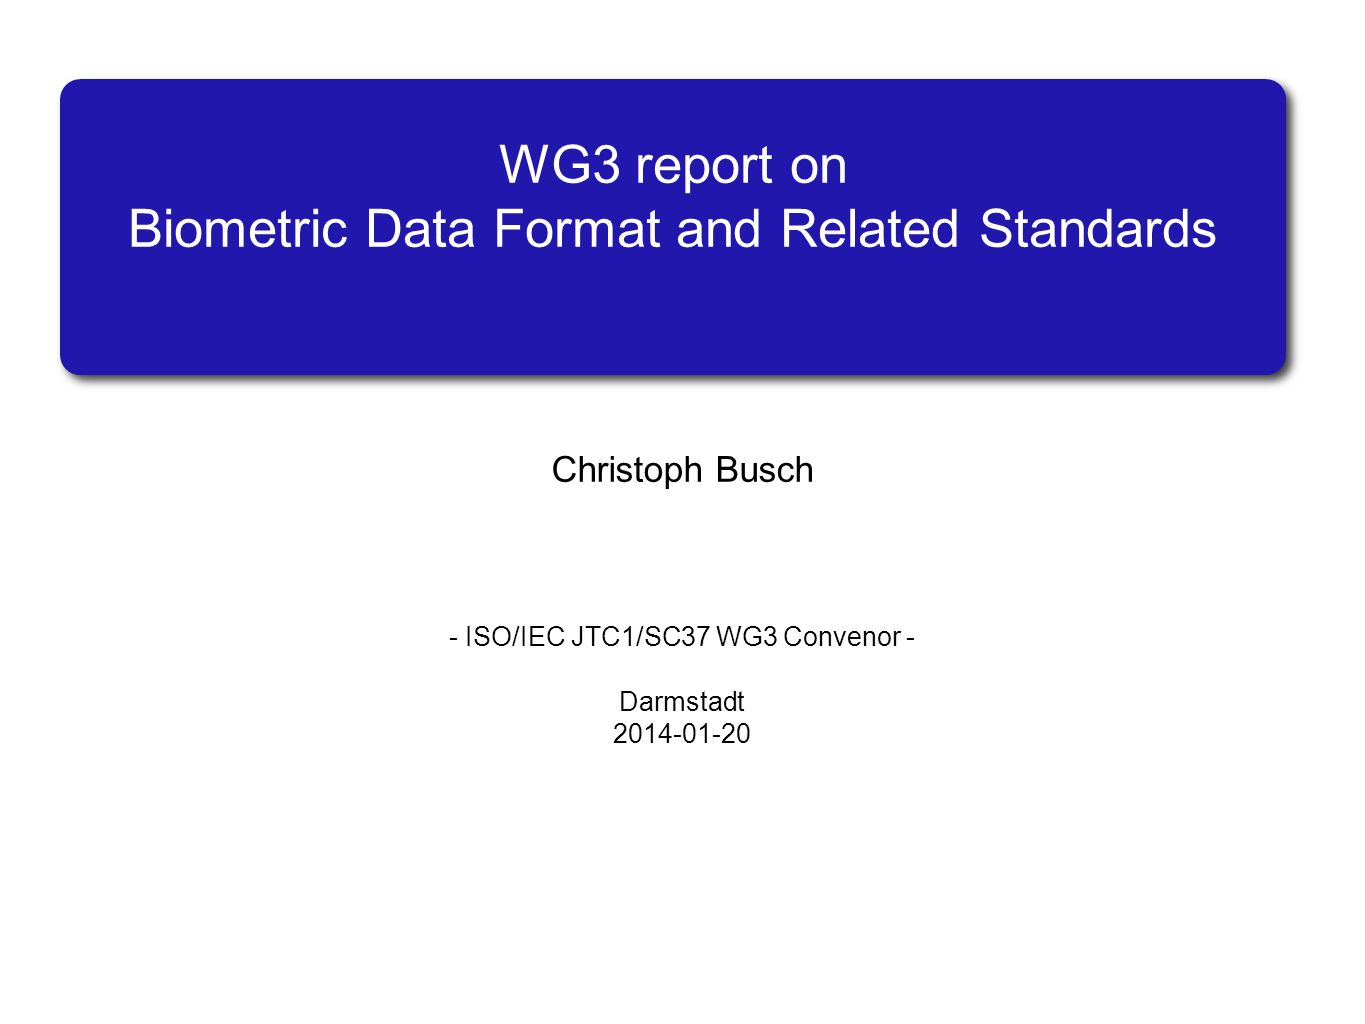 WG3 report on Biometric Data Format and Related Standards Christoph Busch - ISO/IEC JTC1/SC37 WG3 Convenor - Darmstadt 2014-01-20